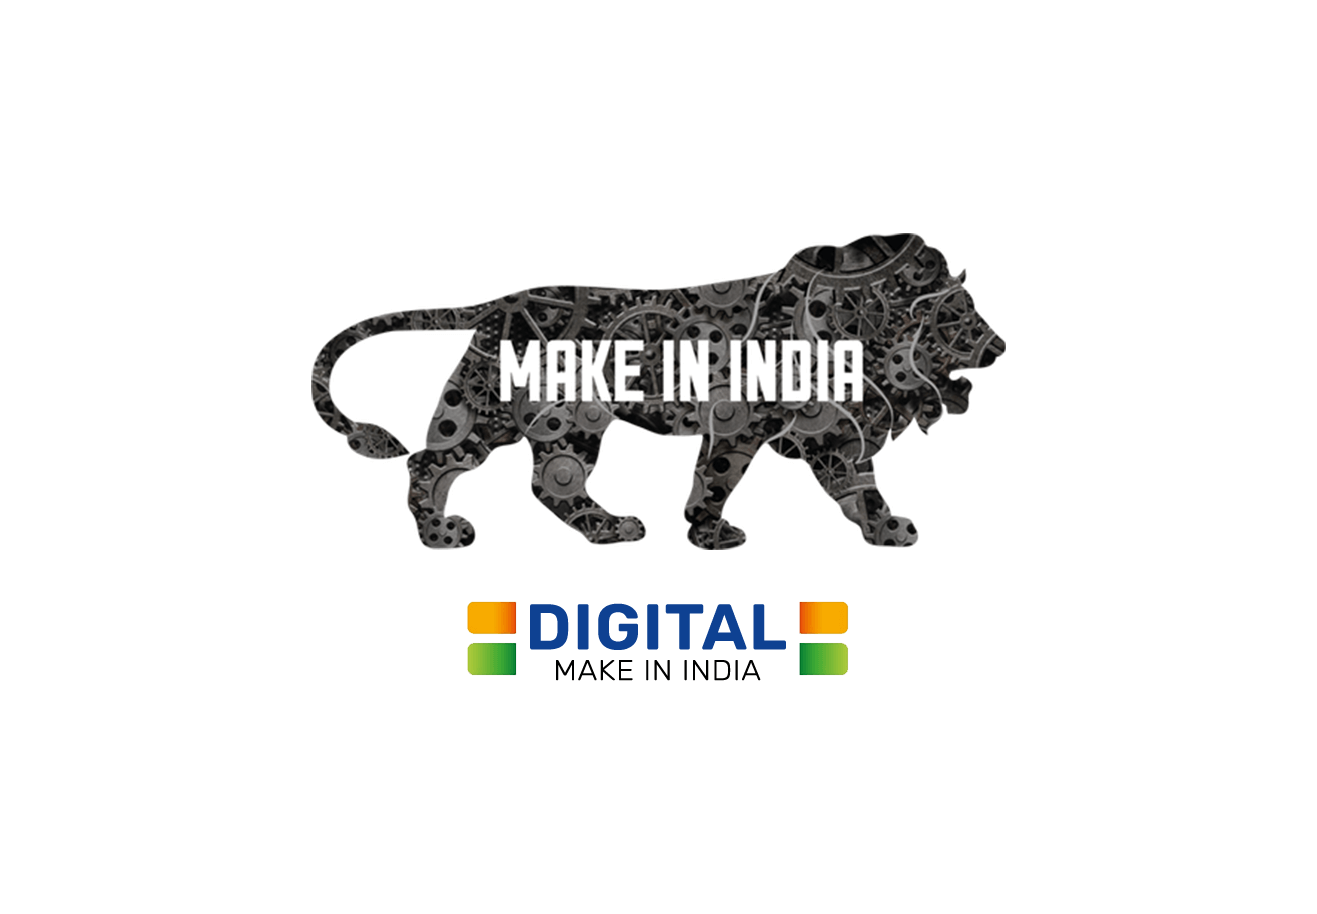 Digital Make in India